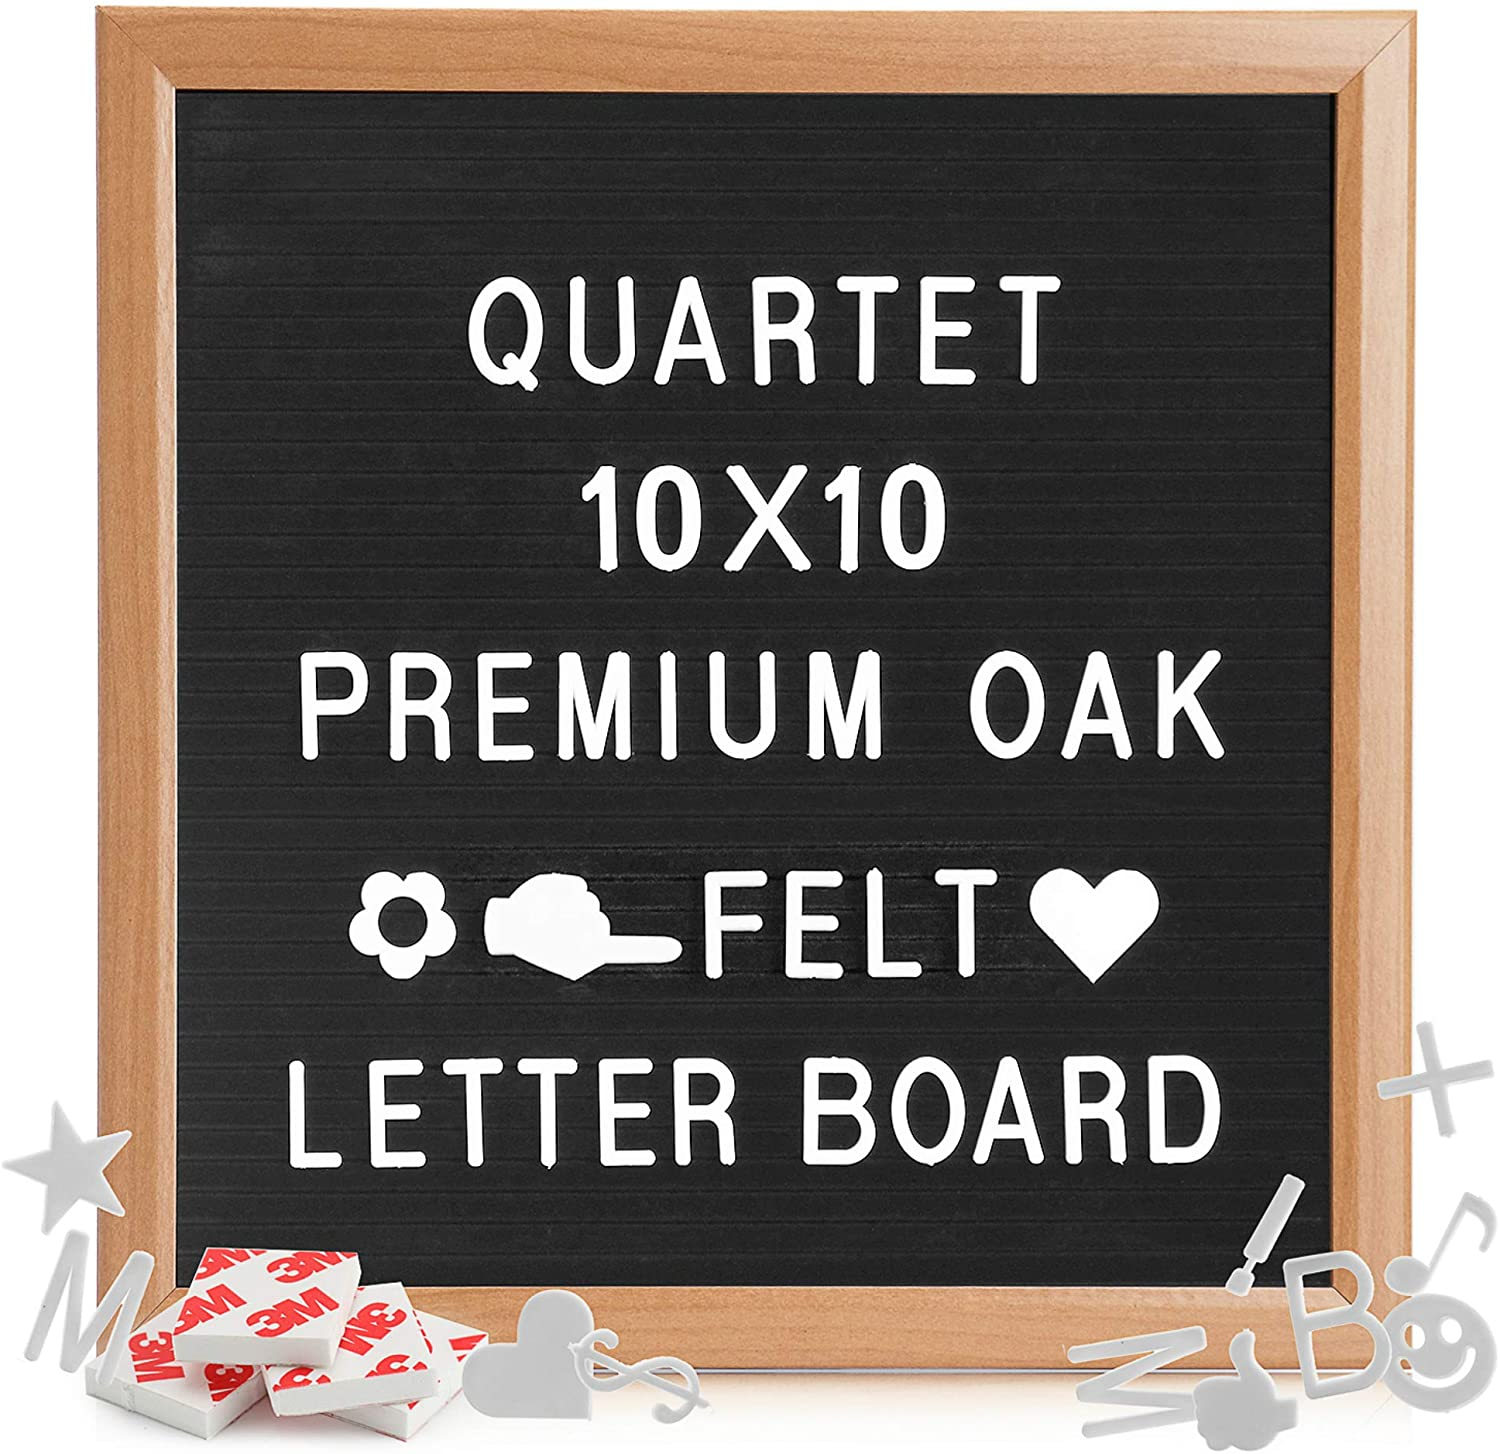 """Quartet Felt Letter Board with Letters and Numbers, 10x10"""" Small Wooden felt board Letter Sign for Word Memo Message, 200 White Letters & Numbers Included, Baby Announcement Changeable letter Board."""